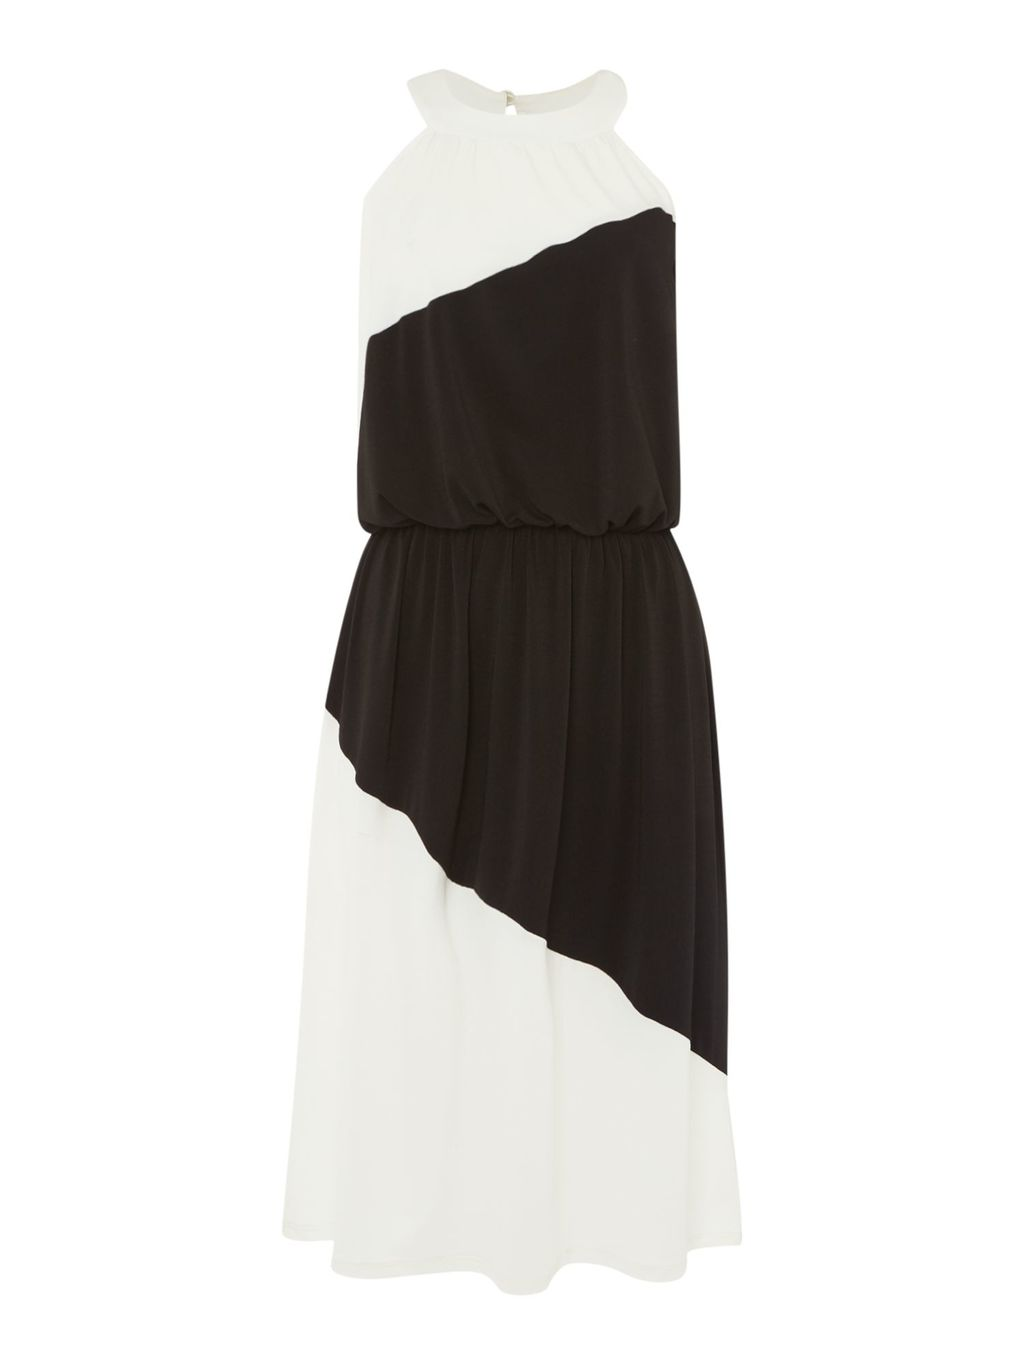 Harper Halterneck Colour Block Midi Dress, Black & Ivory - style: shift; fit: fitted at waist; sleeve style: sleeveless; waist detail: fitted waist; secondary colour: white; predominant colour: black; occasions: evening, occasion; length: on the knee; fibres: polyester/polyamide - stretch; neckline: crew; sleeve length: sleeveless; texture group: crepes; pattern type: fabric; pattern size: light/subtle; pattern: colourblock; season: s/s 2016; wardrobe: event